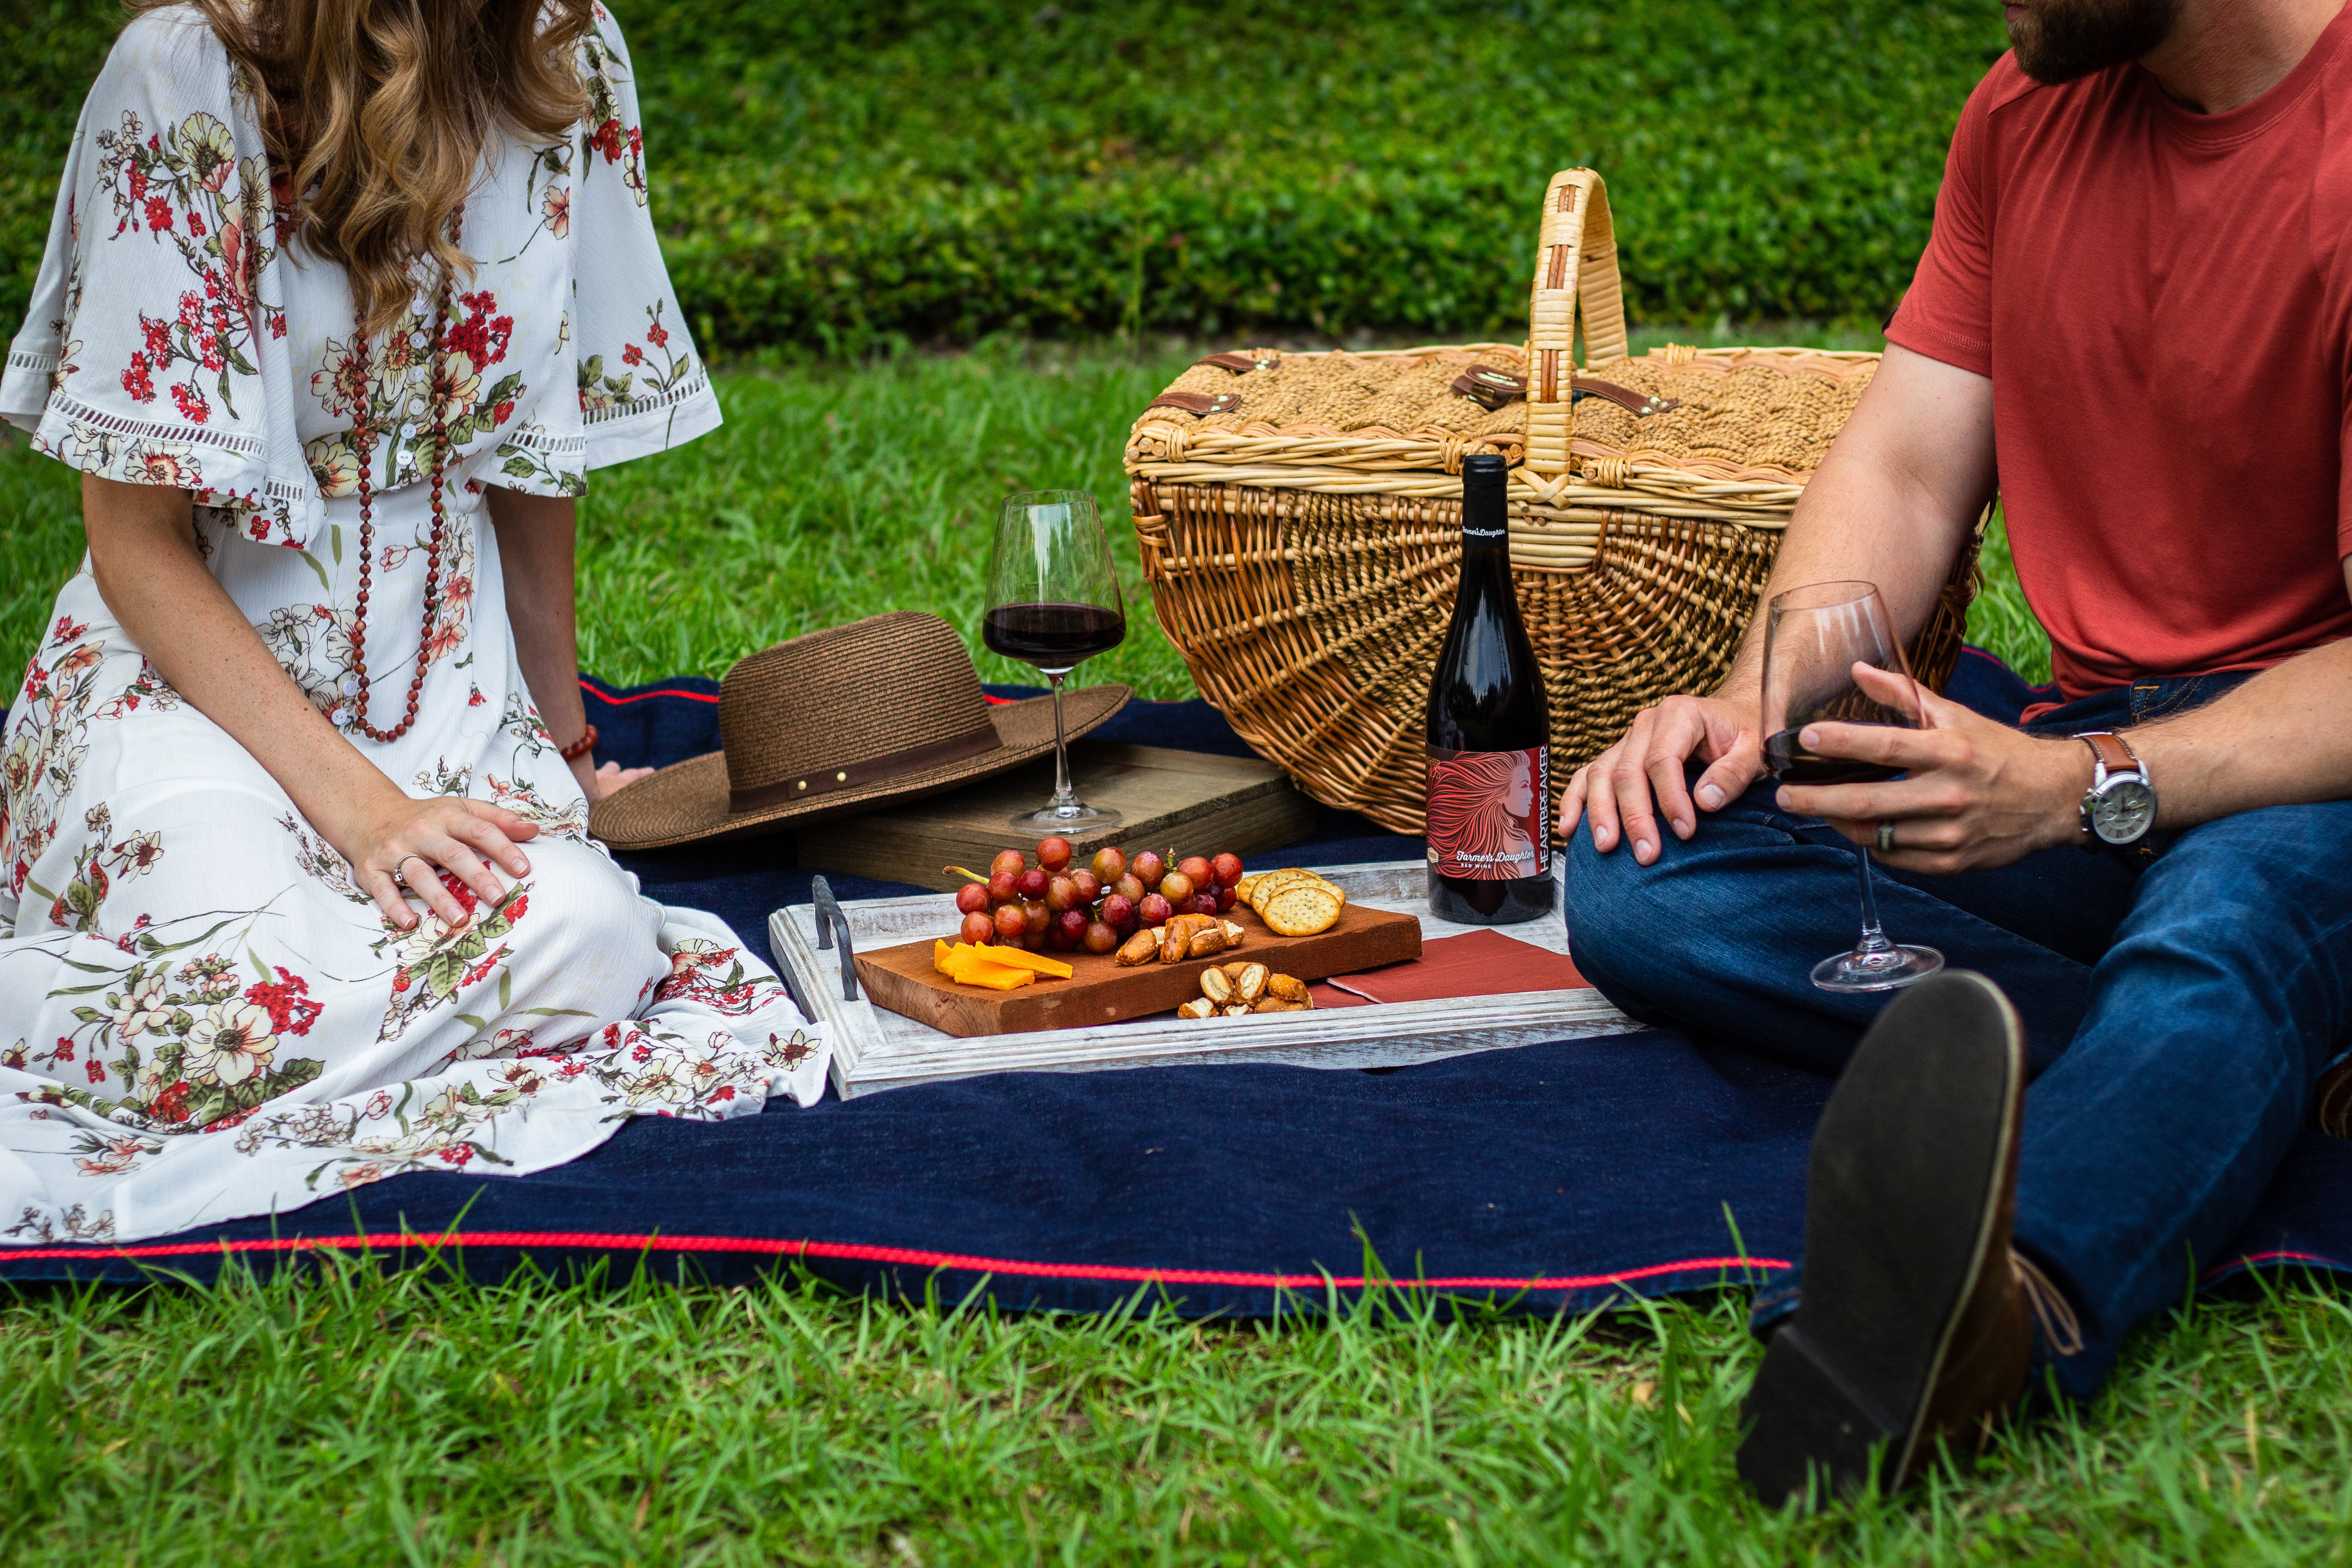 A picnic is a beautiful way to treat your Valentine!